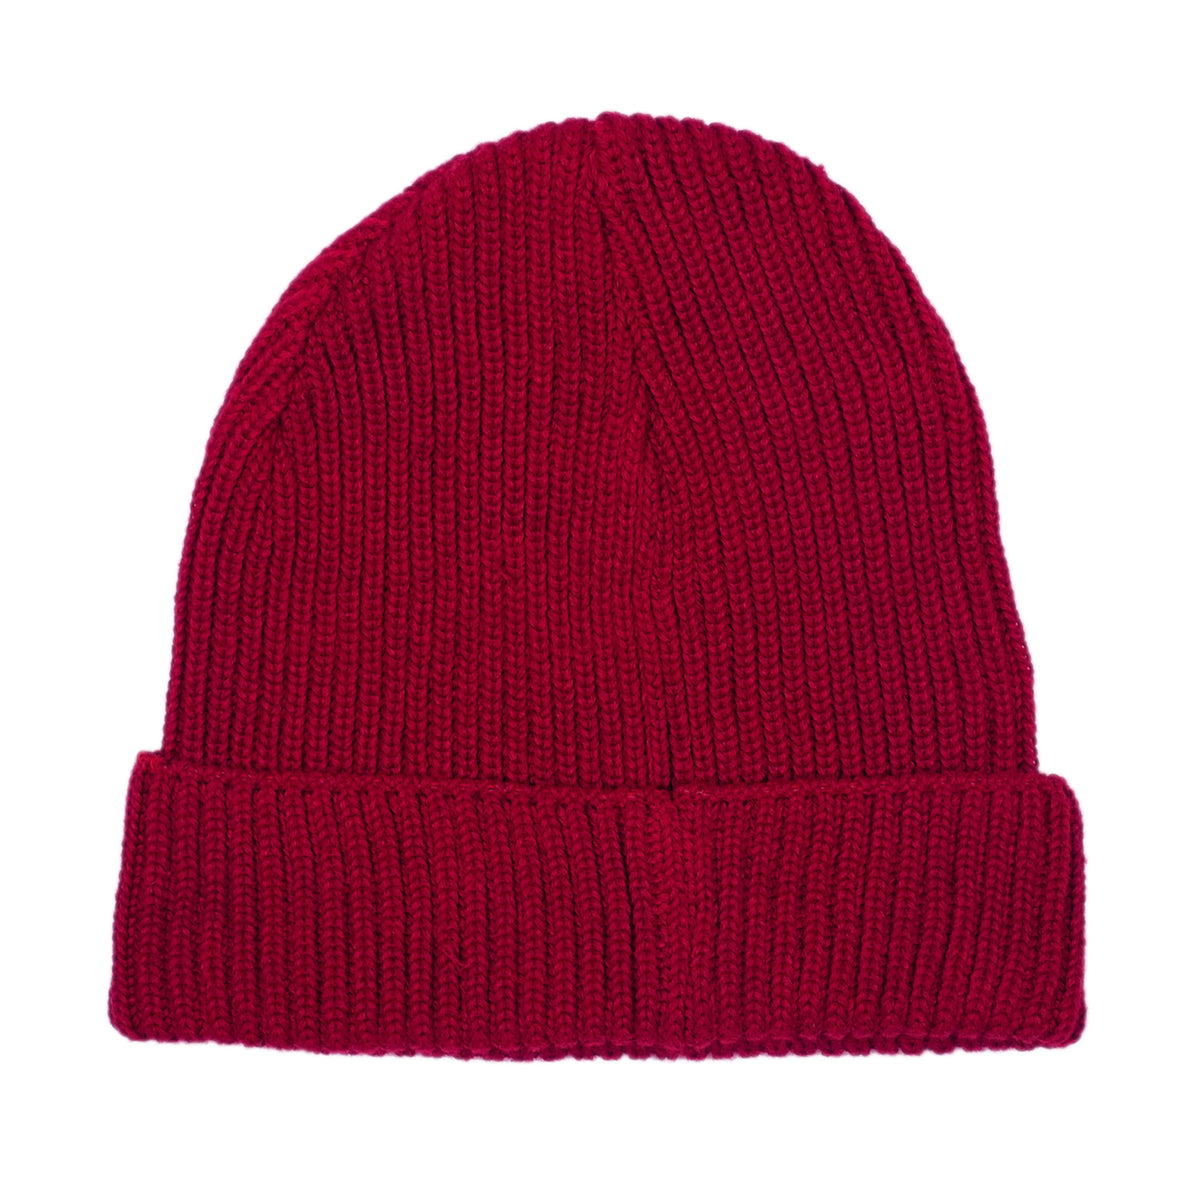 sustainable beanie hat